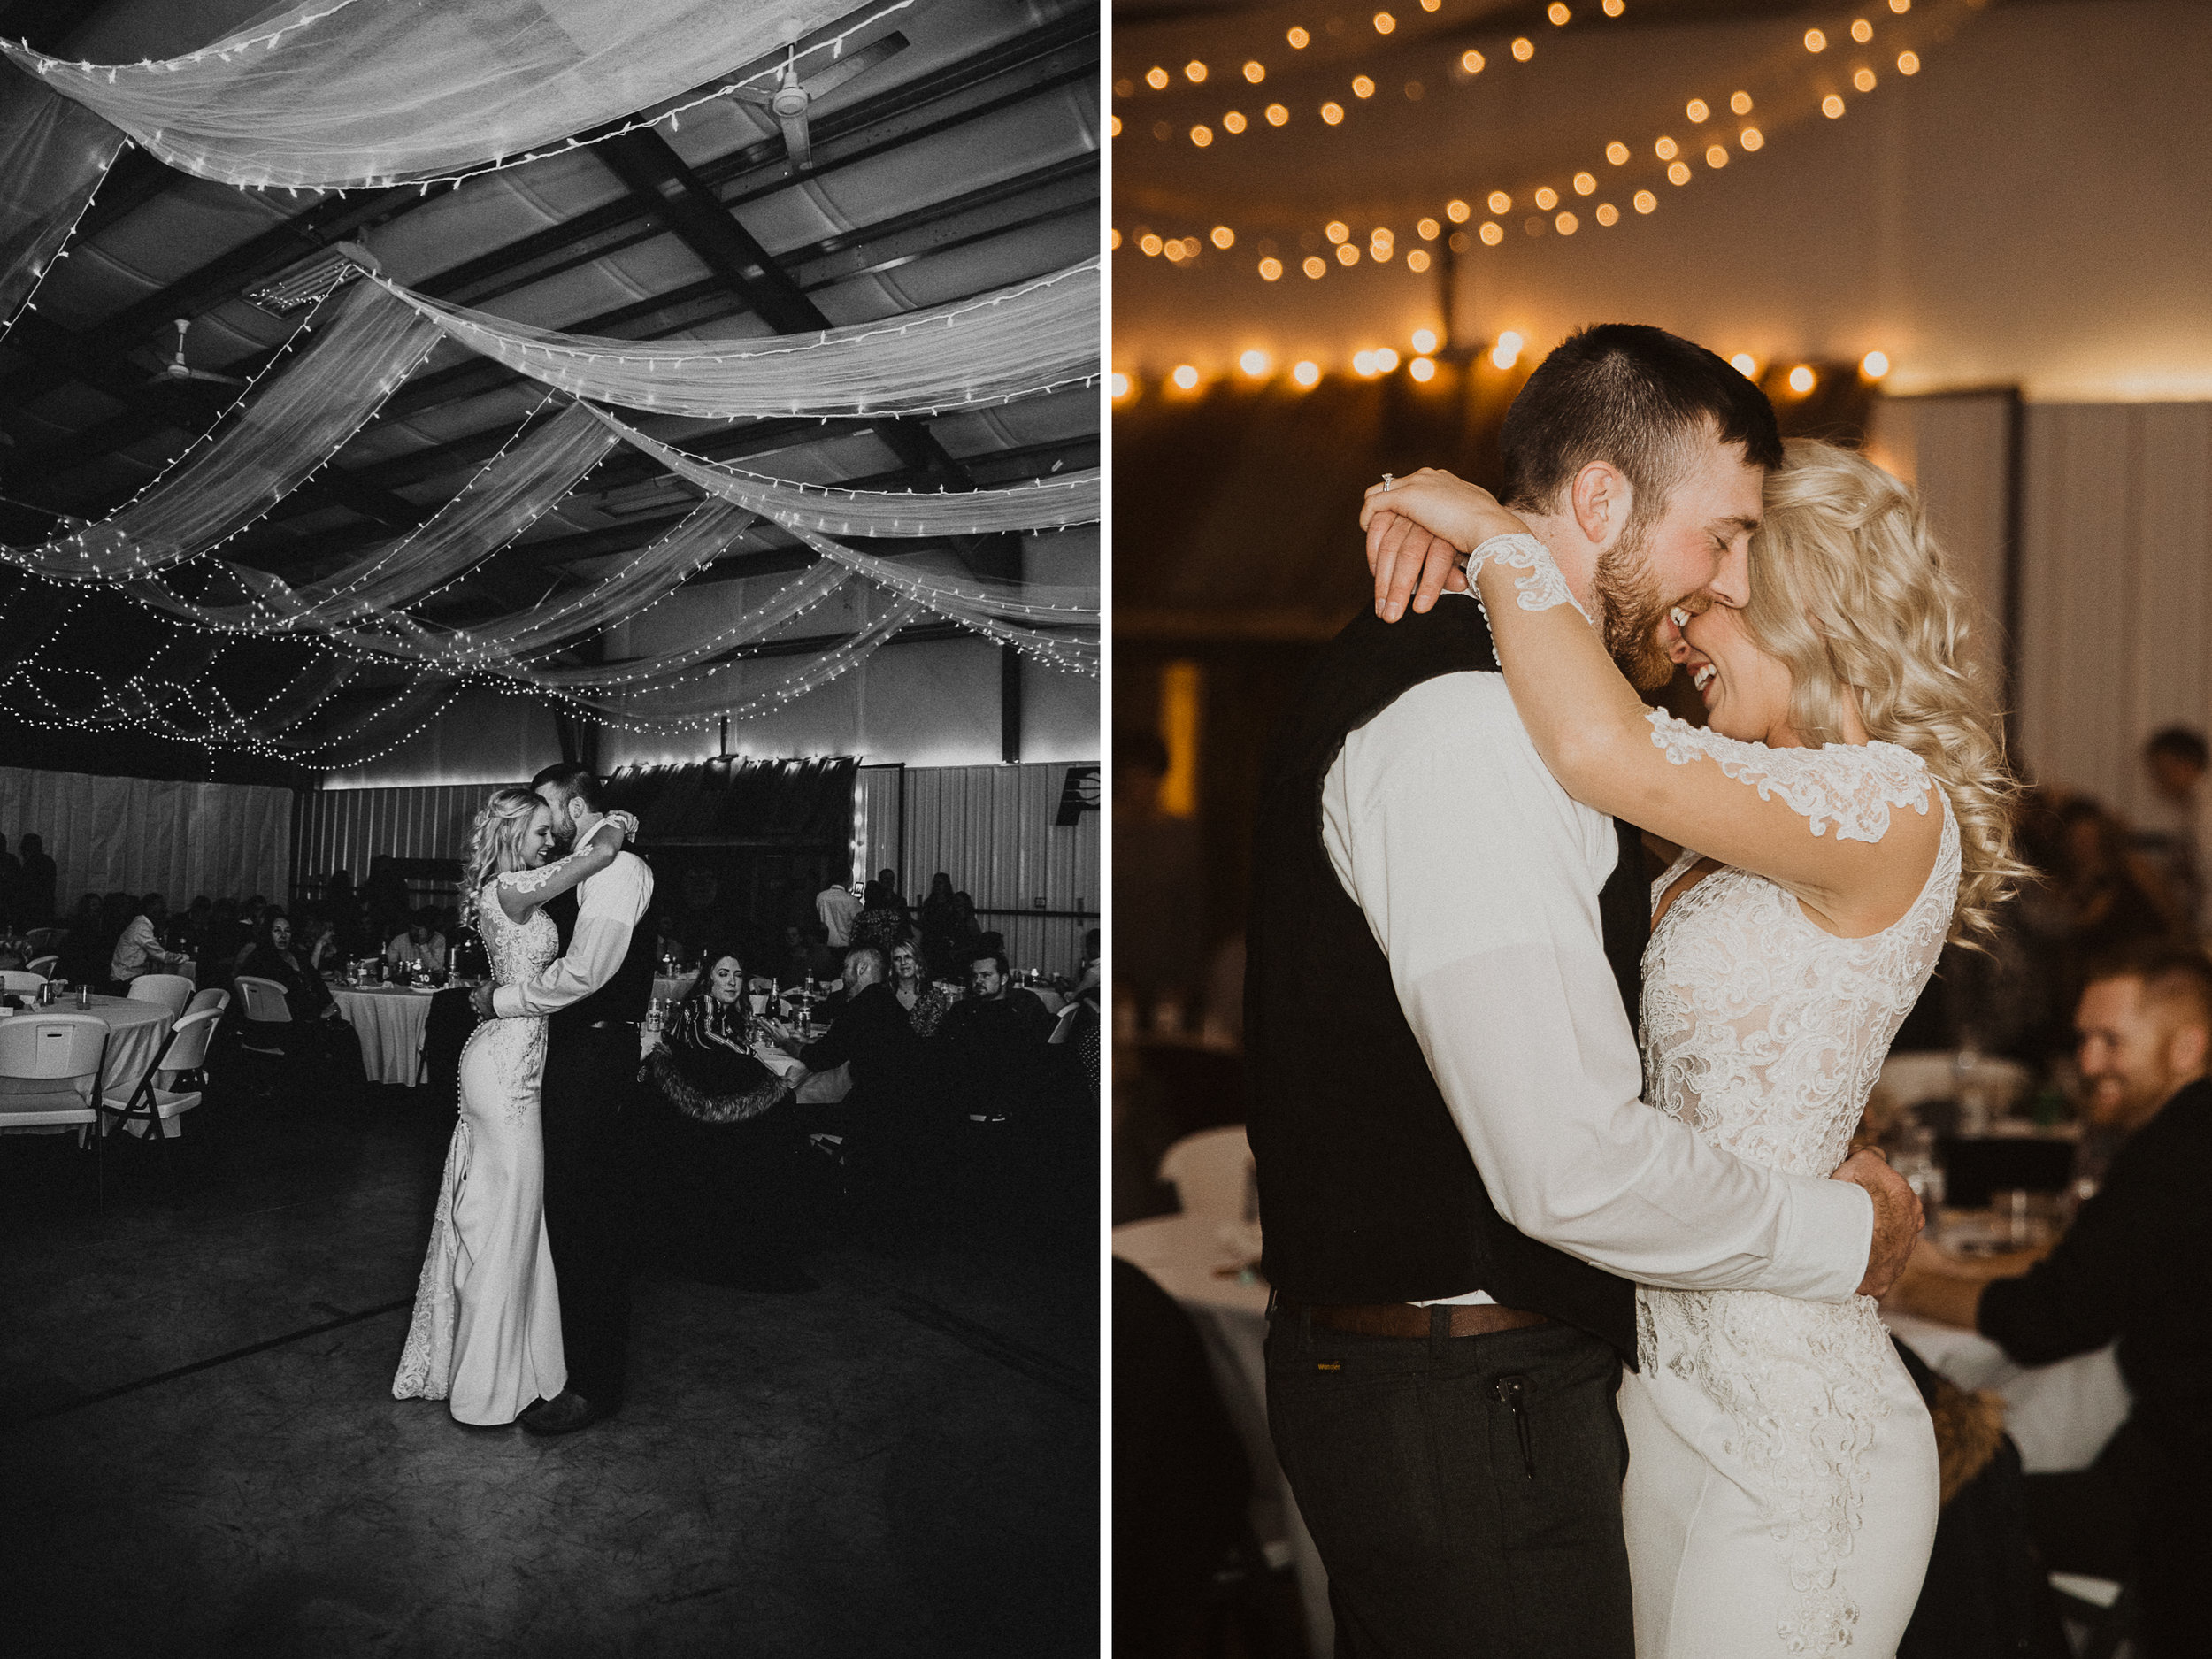 romantic-first-dance-wedding.jpg